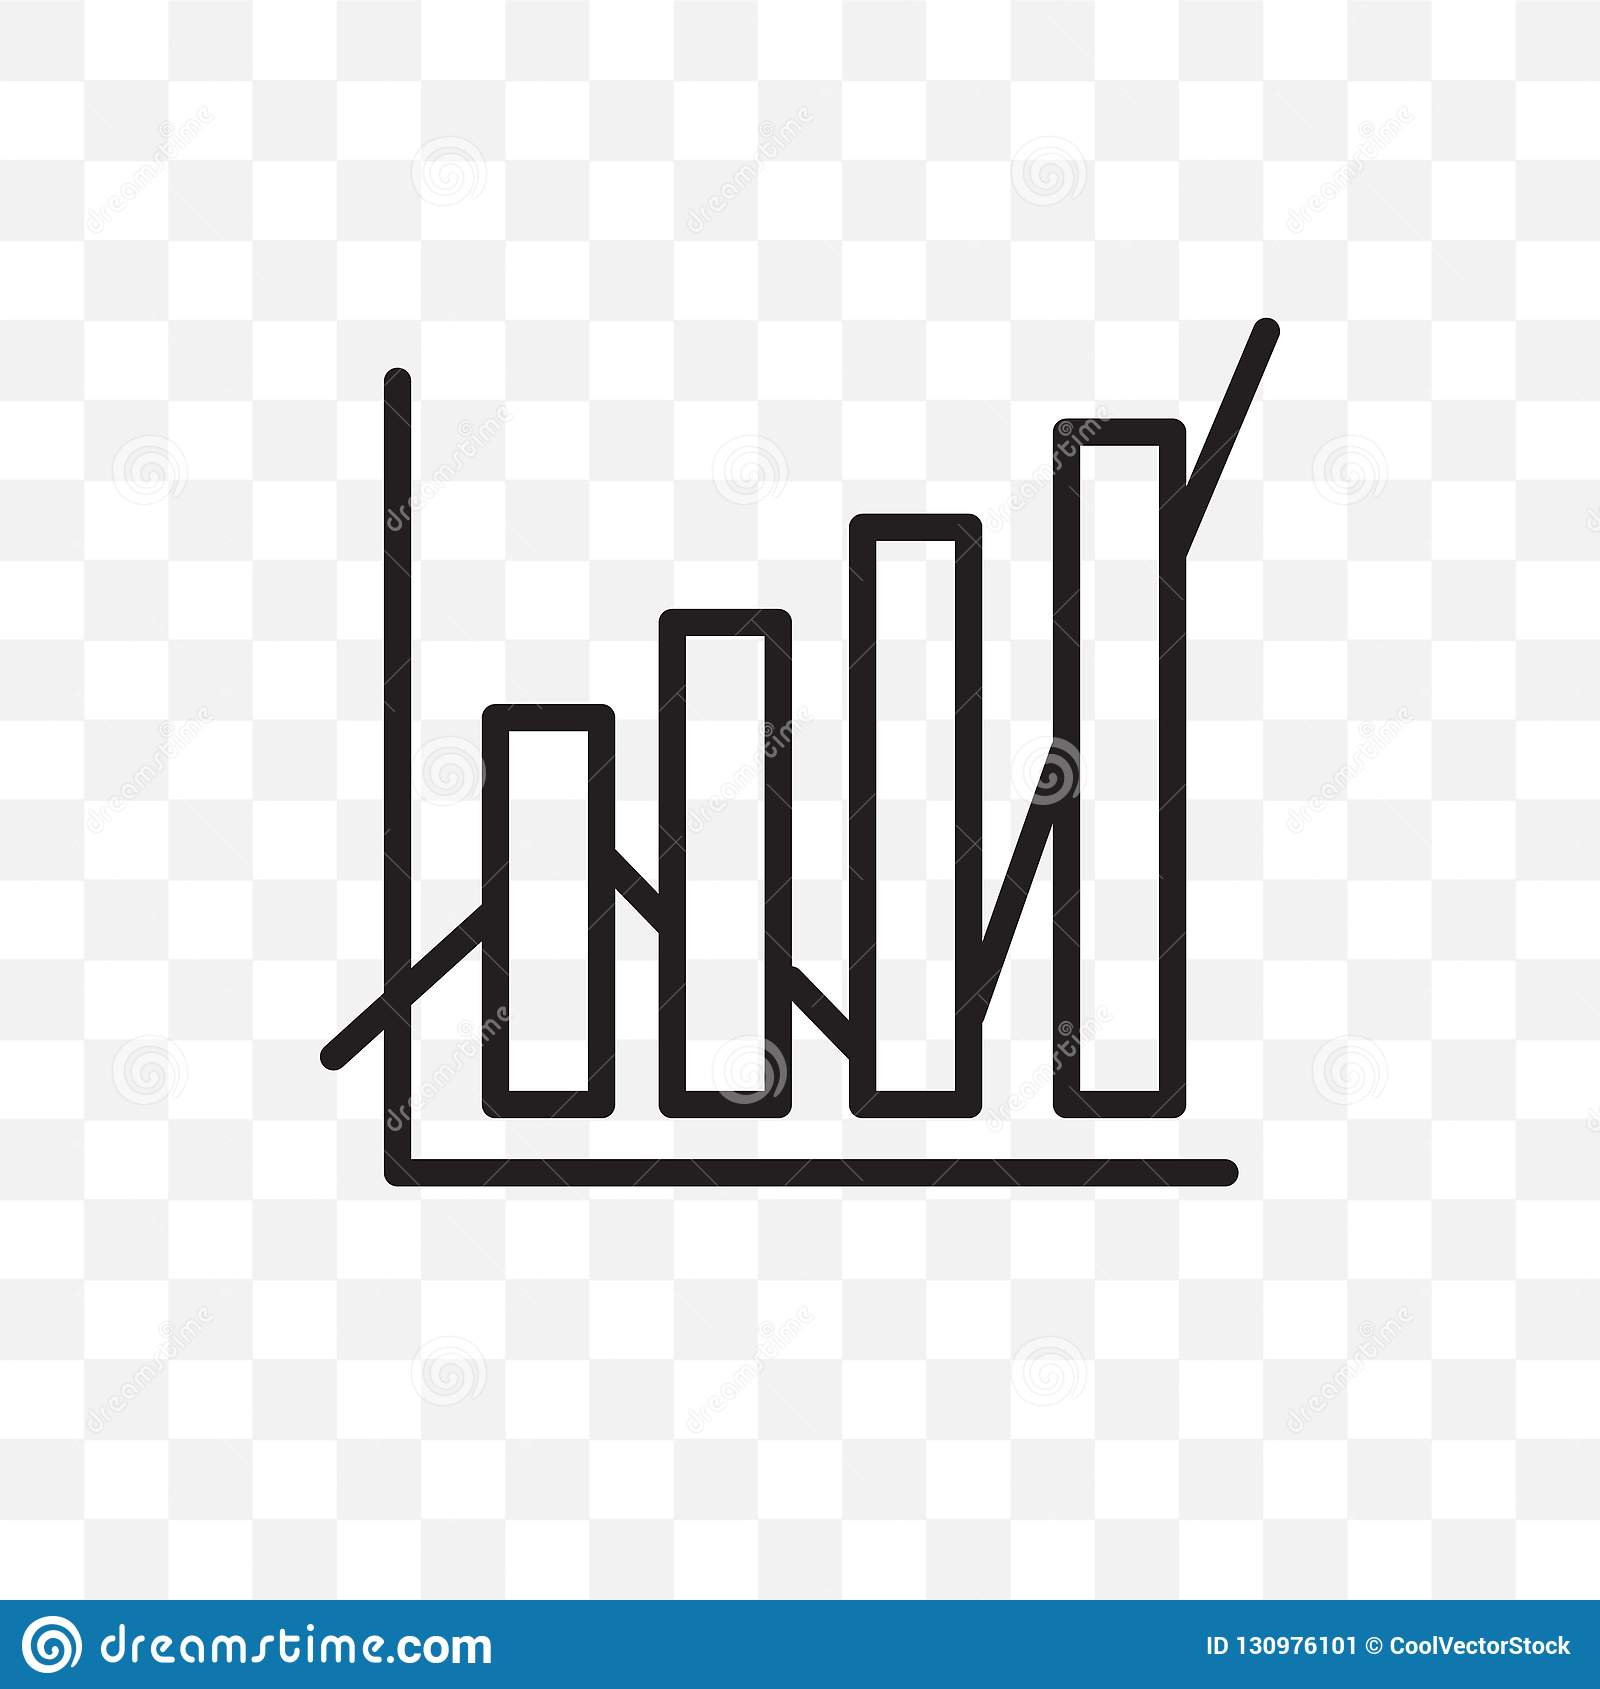 Data analytics vector linear icon isolated on transparent background, Data analytics transparency concept can be used for web and